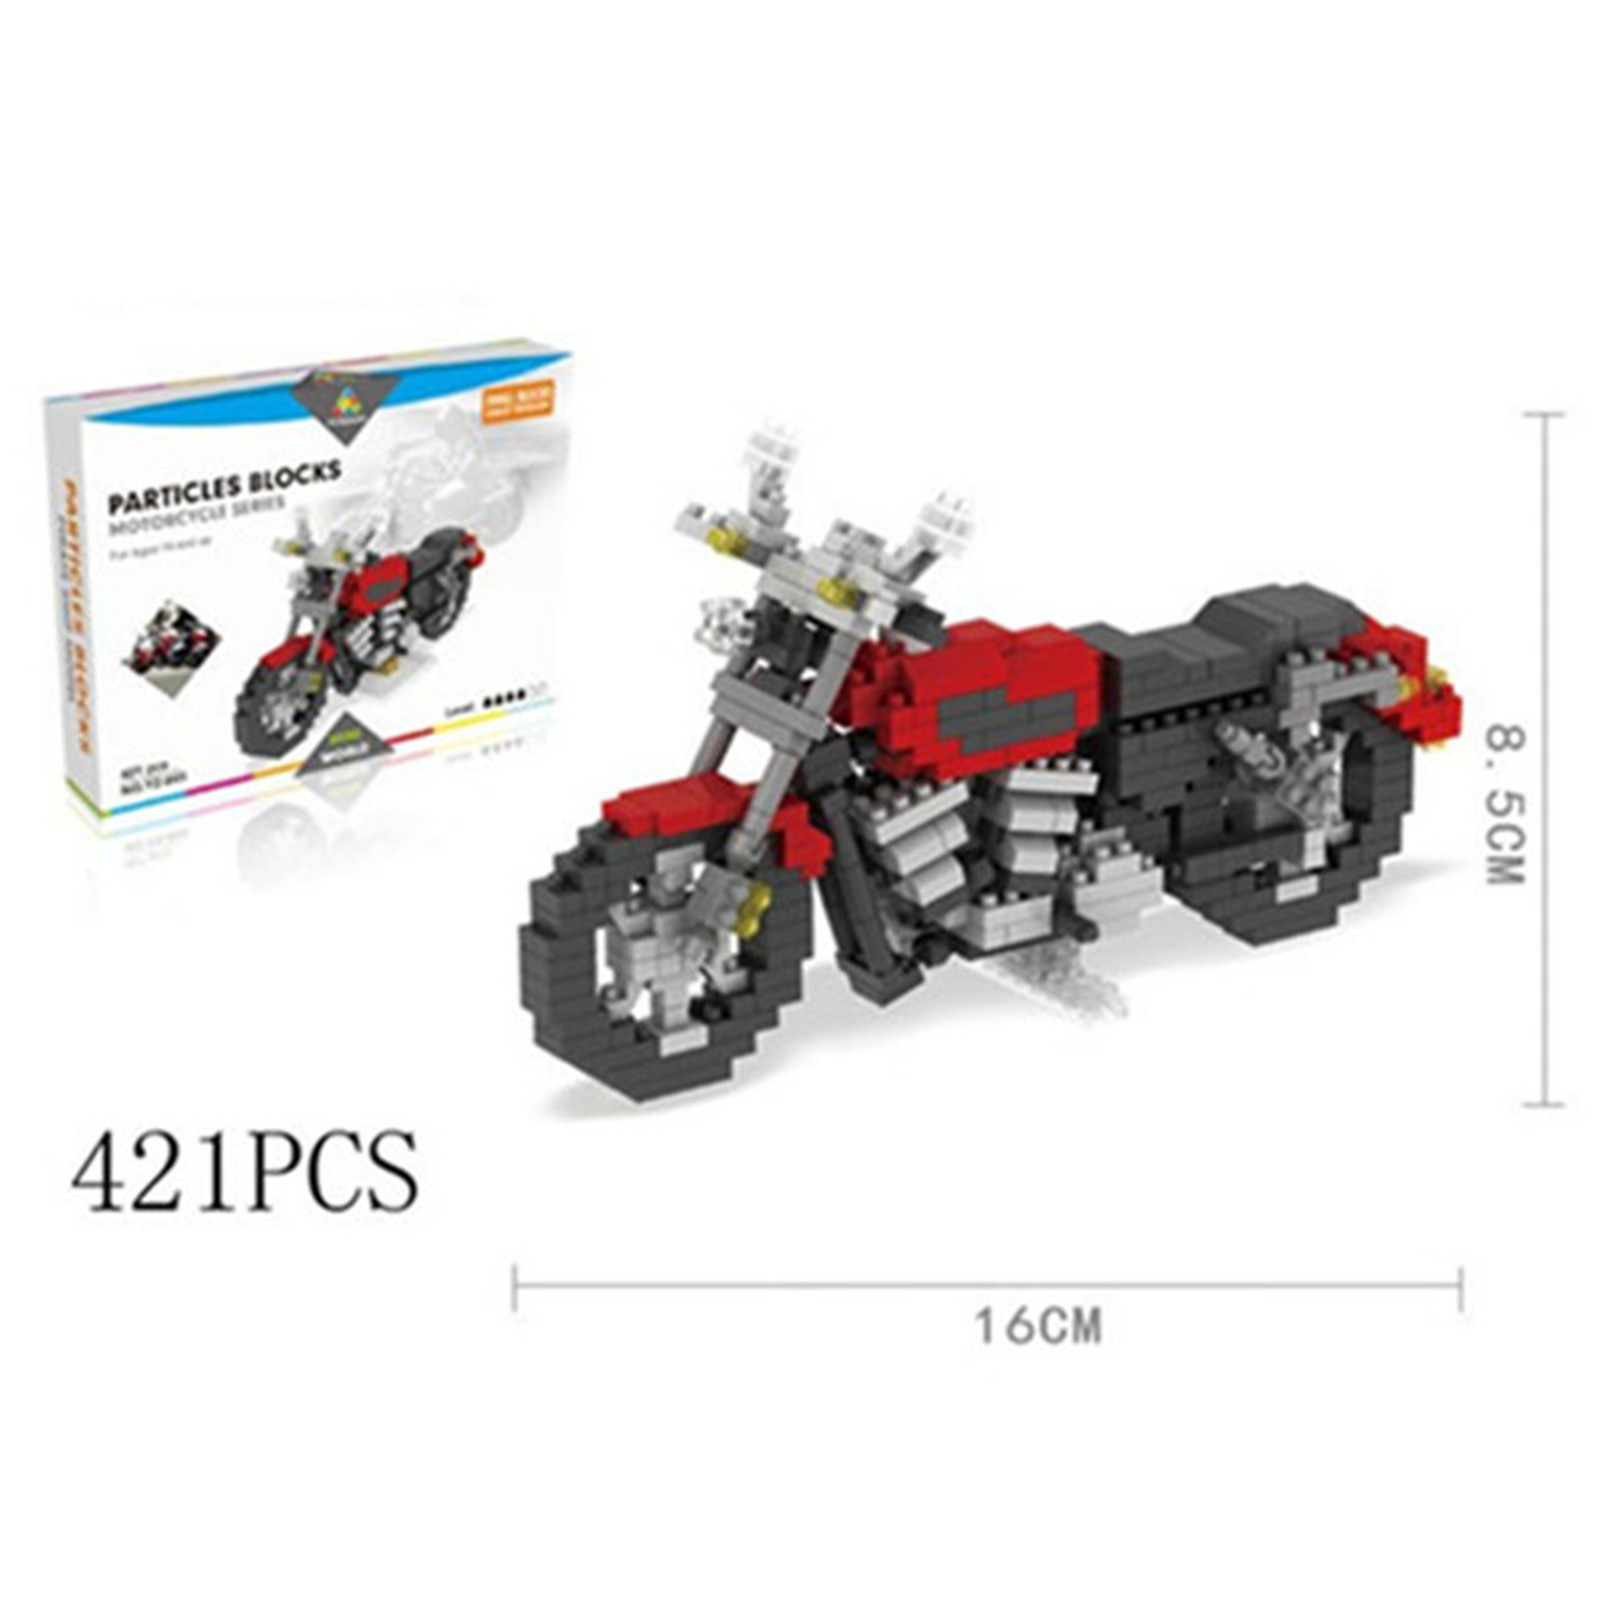 Particles Small Blocks Red Motorcycle 421 Pieces Blocks